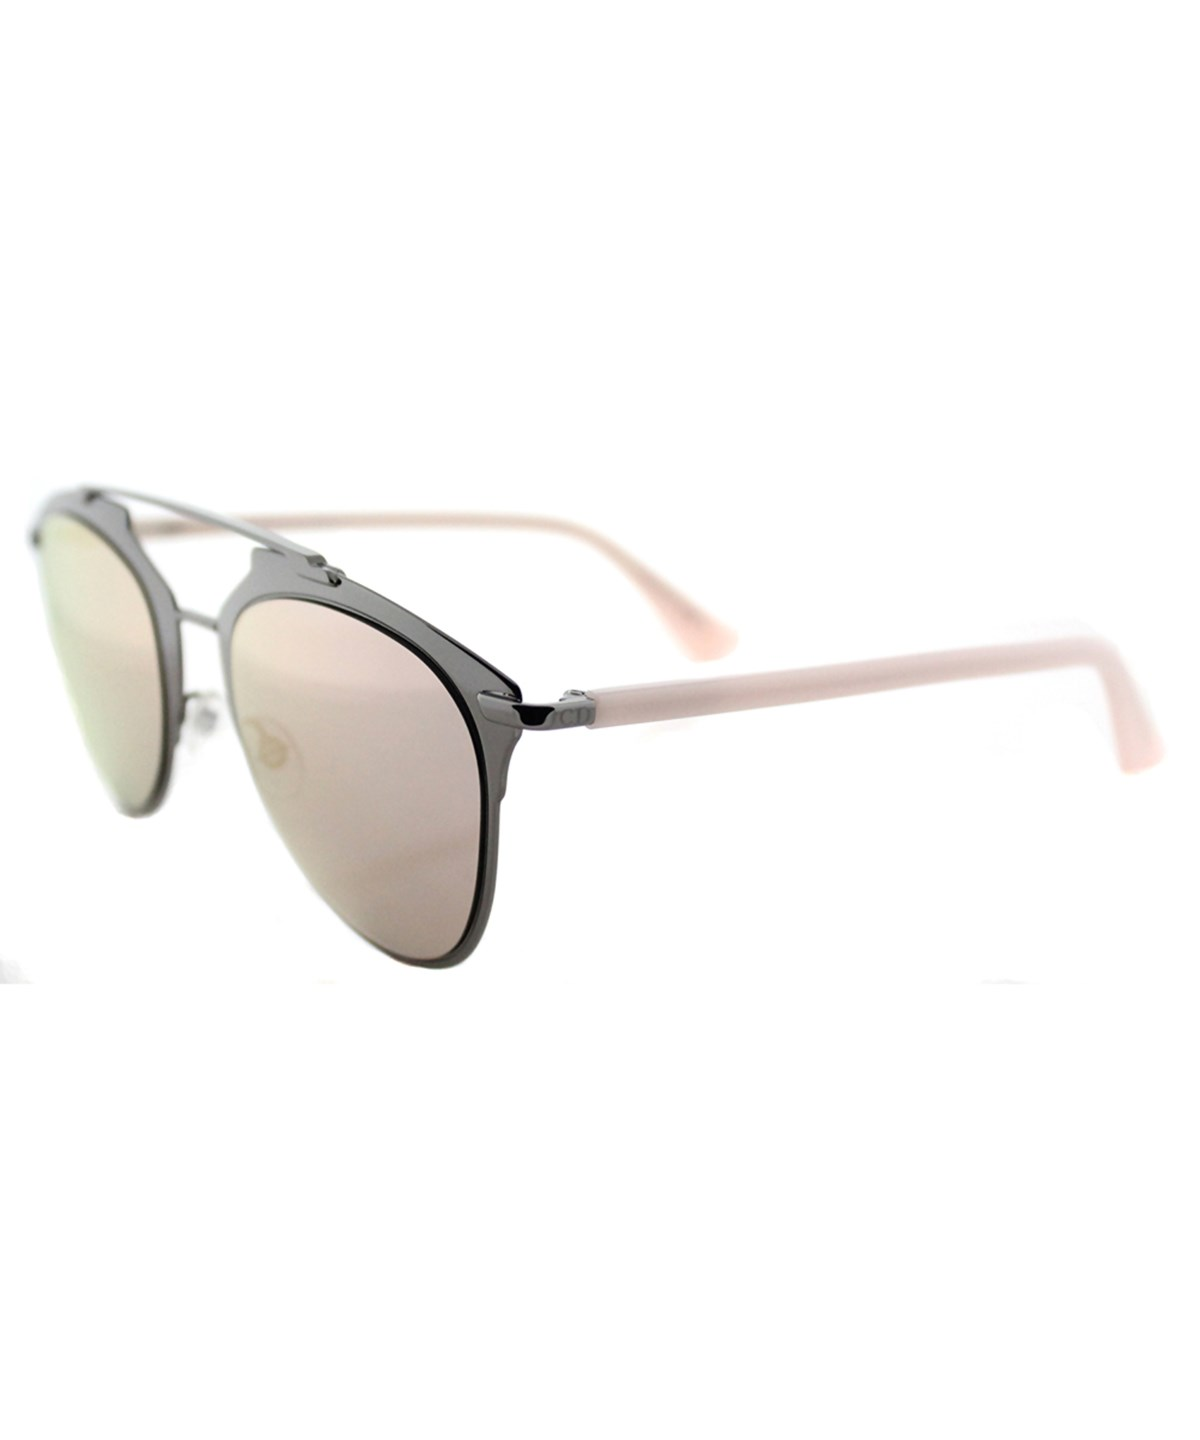 REFLECTED AVIATOR METAL SUNGLASSES'